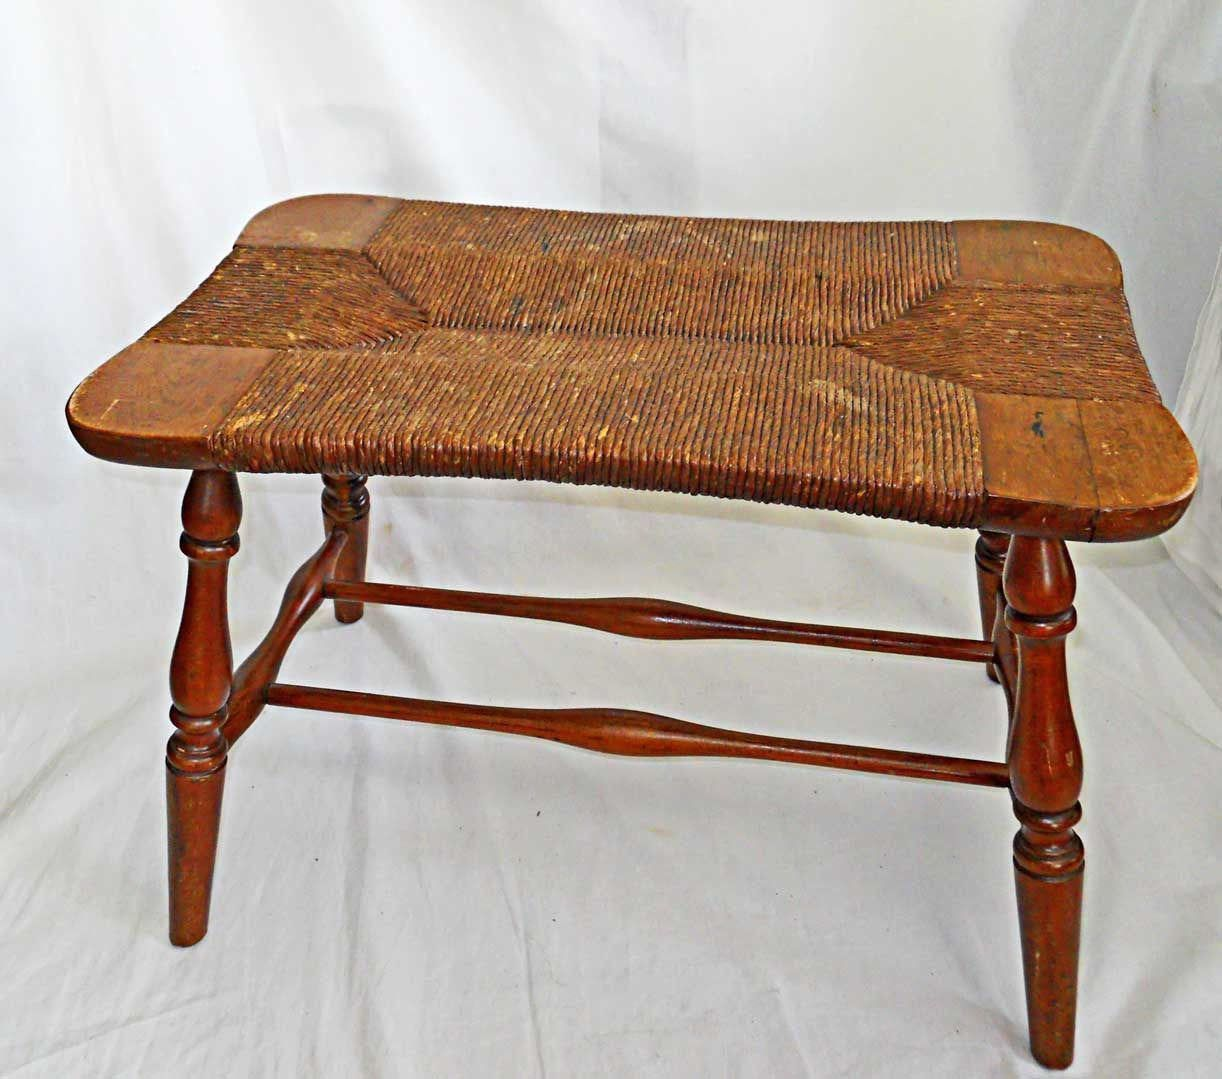 Antique Vintage Stool Rush Seat Bench Side Table Farmhouse